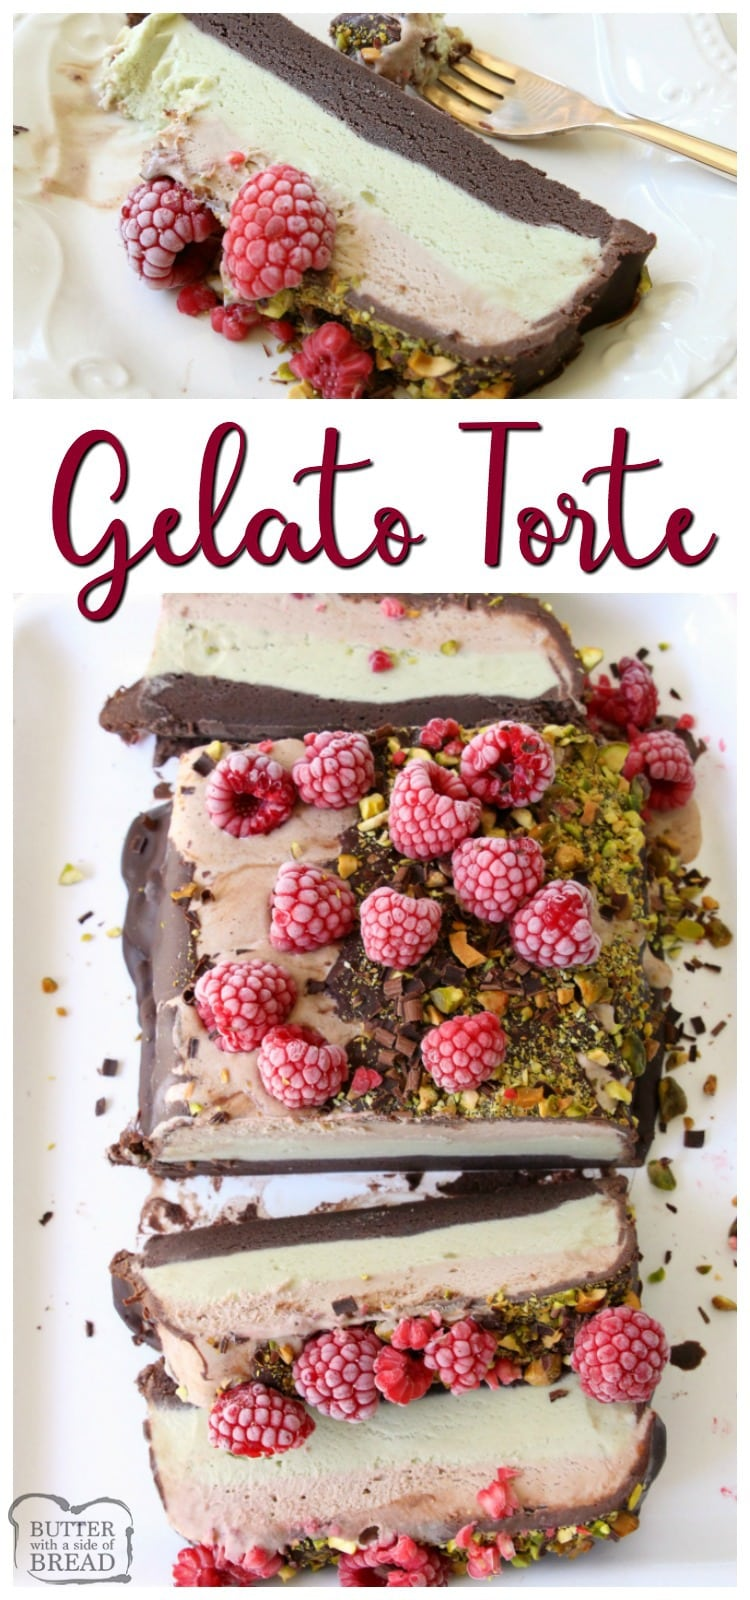 Gorgeous Gelato Torte recipe with sophisticated flavors. Three layers of rich, creamy gelato topped with chocolate ganache, pistachios & fresh raspberries.